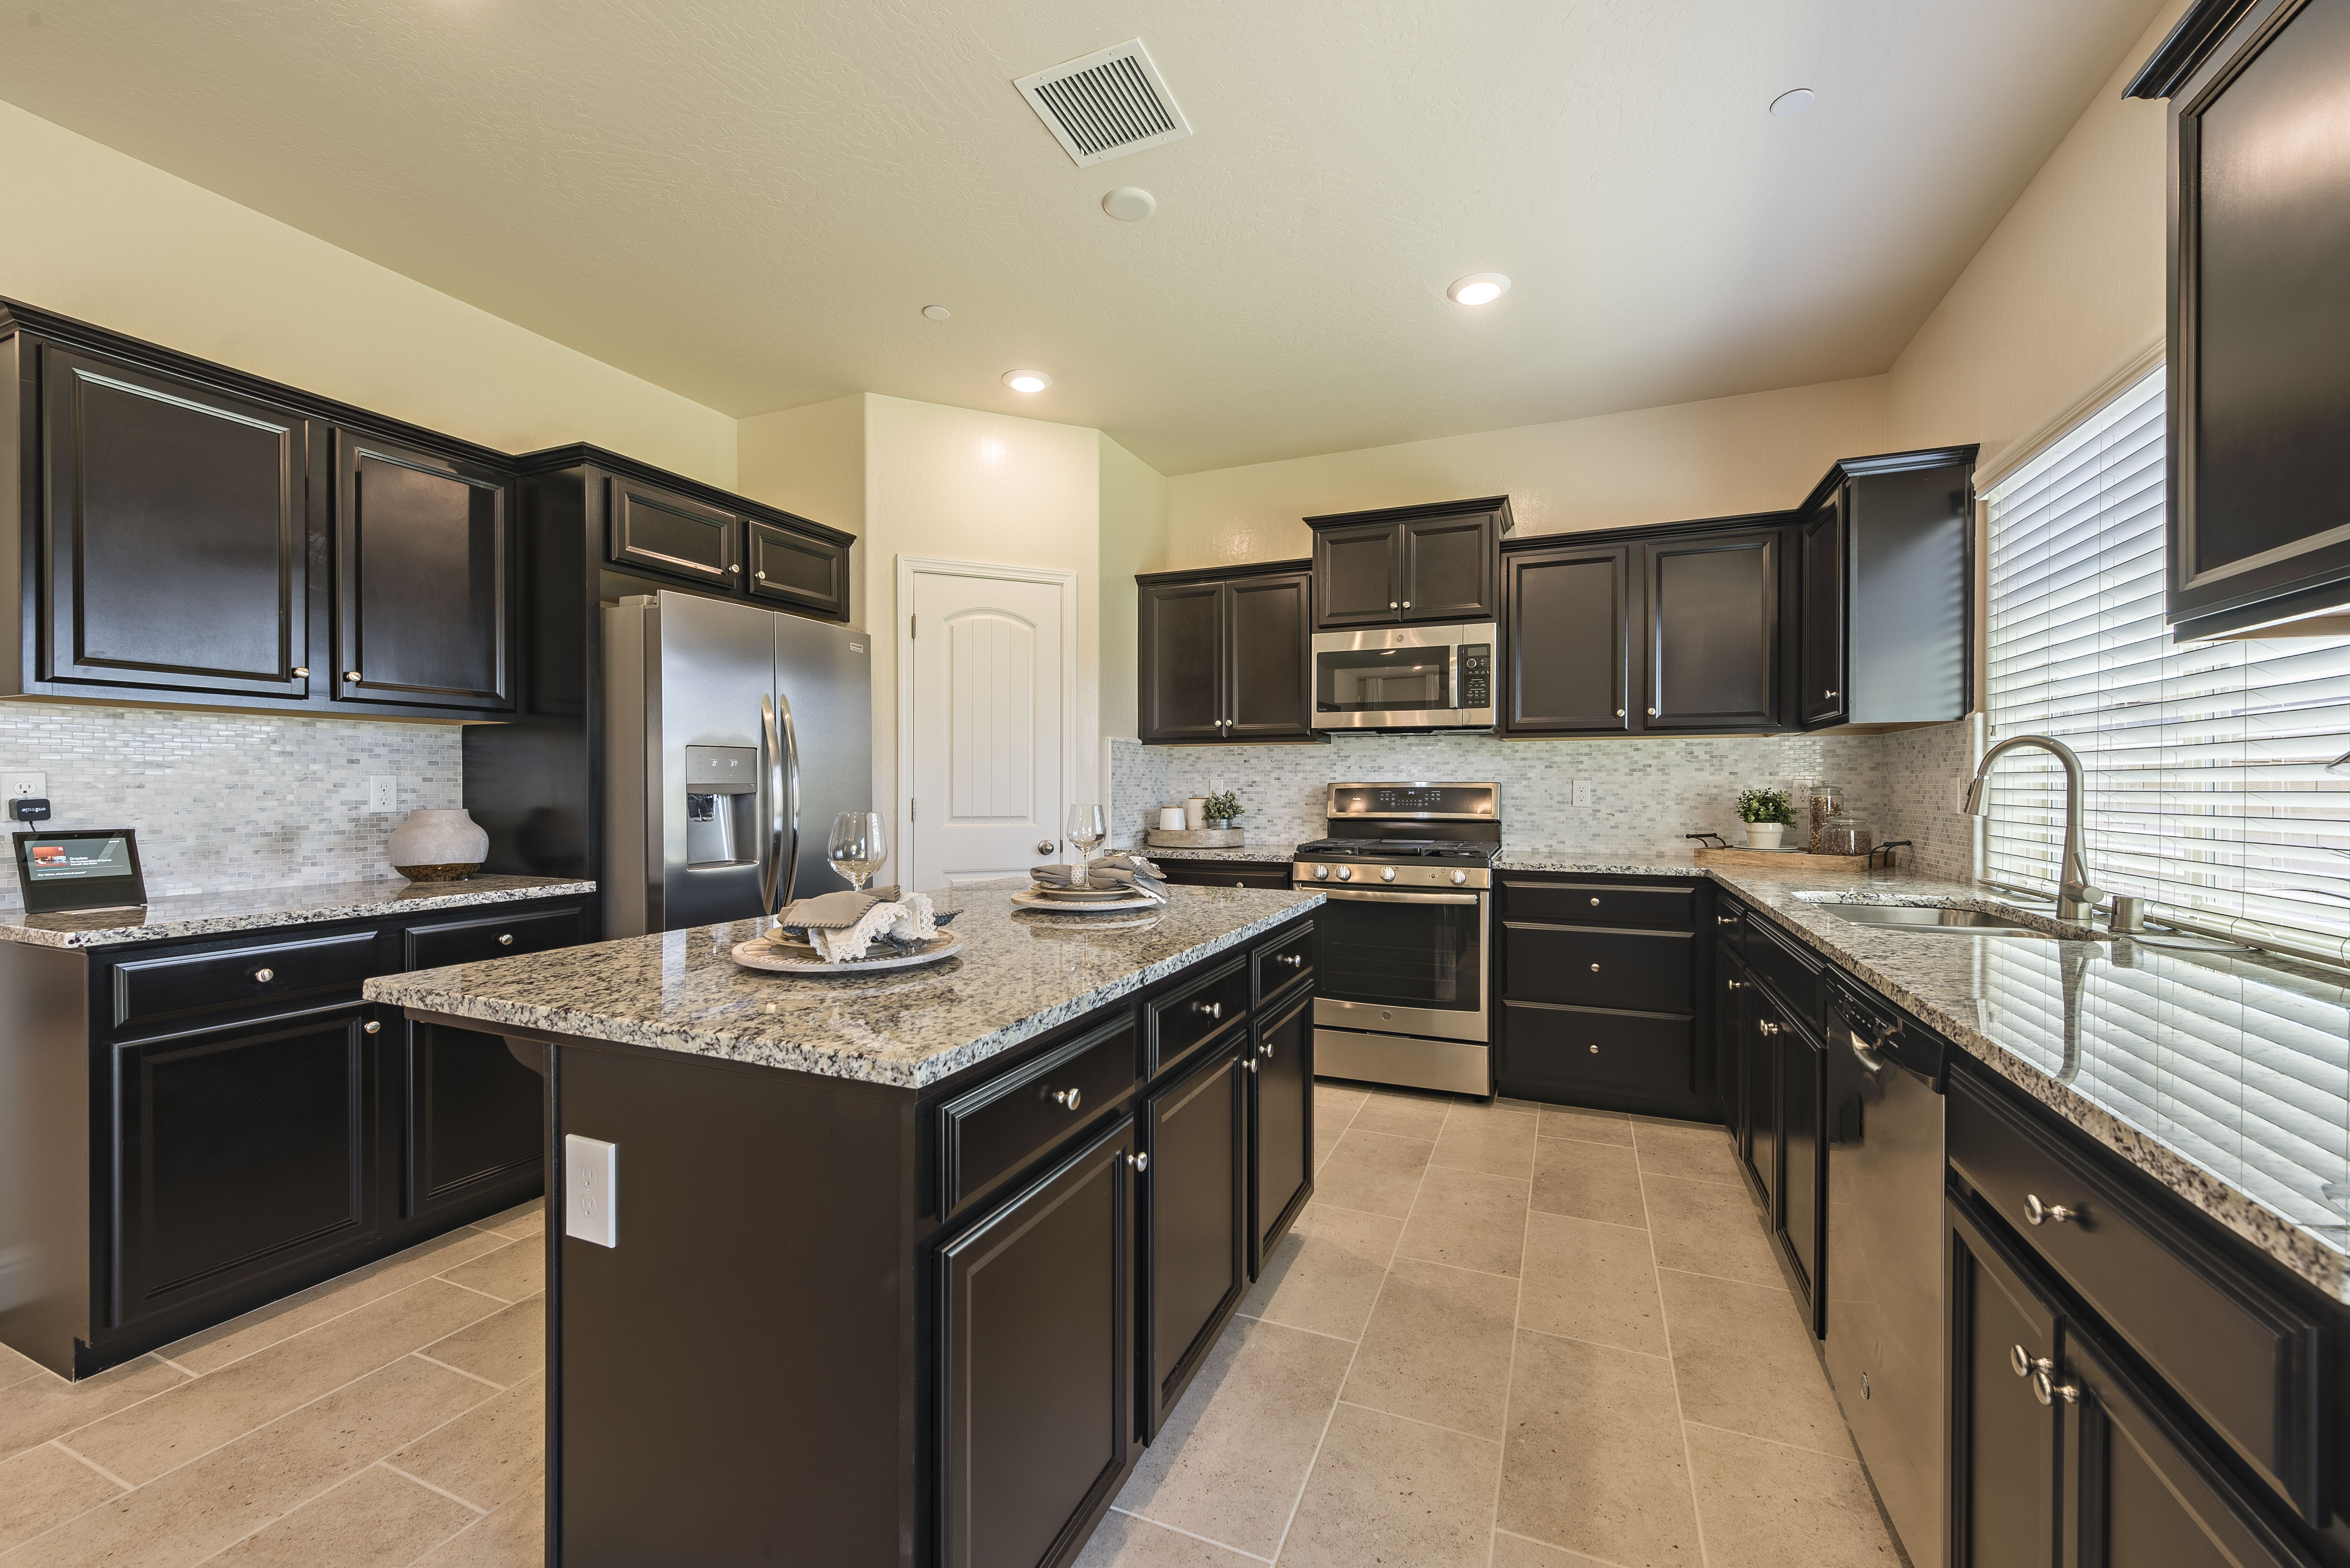 Spacious Traditional Kitchen With Middle Island And Dark Cabinets New Homes For Sale New Home Construction New House Plans